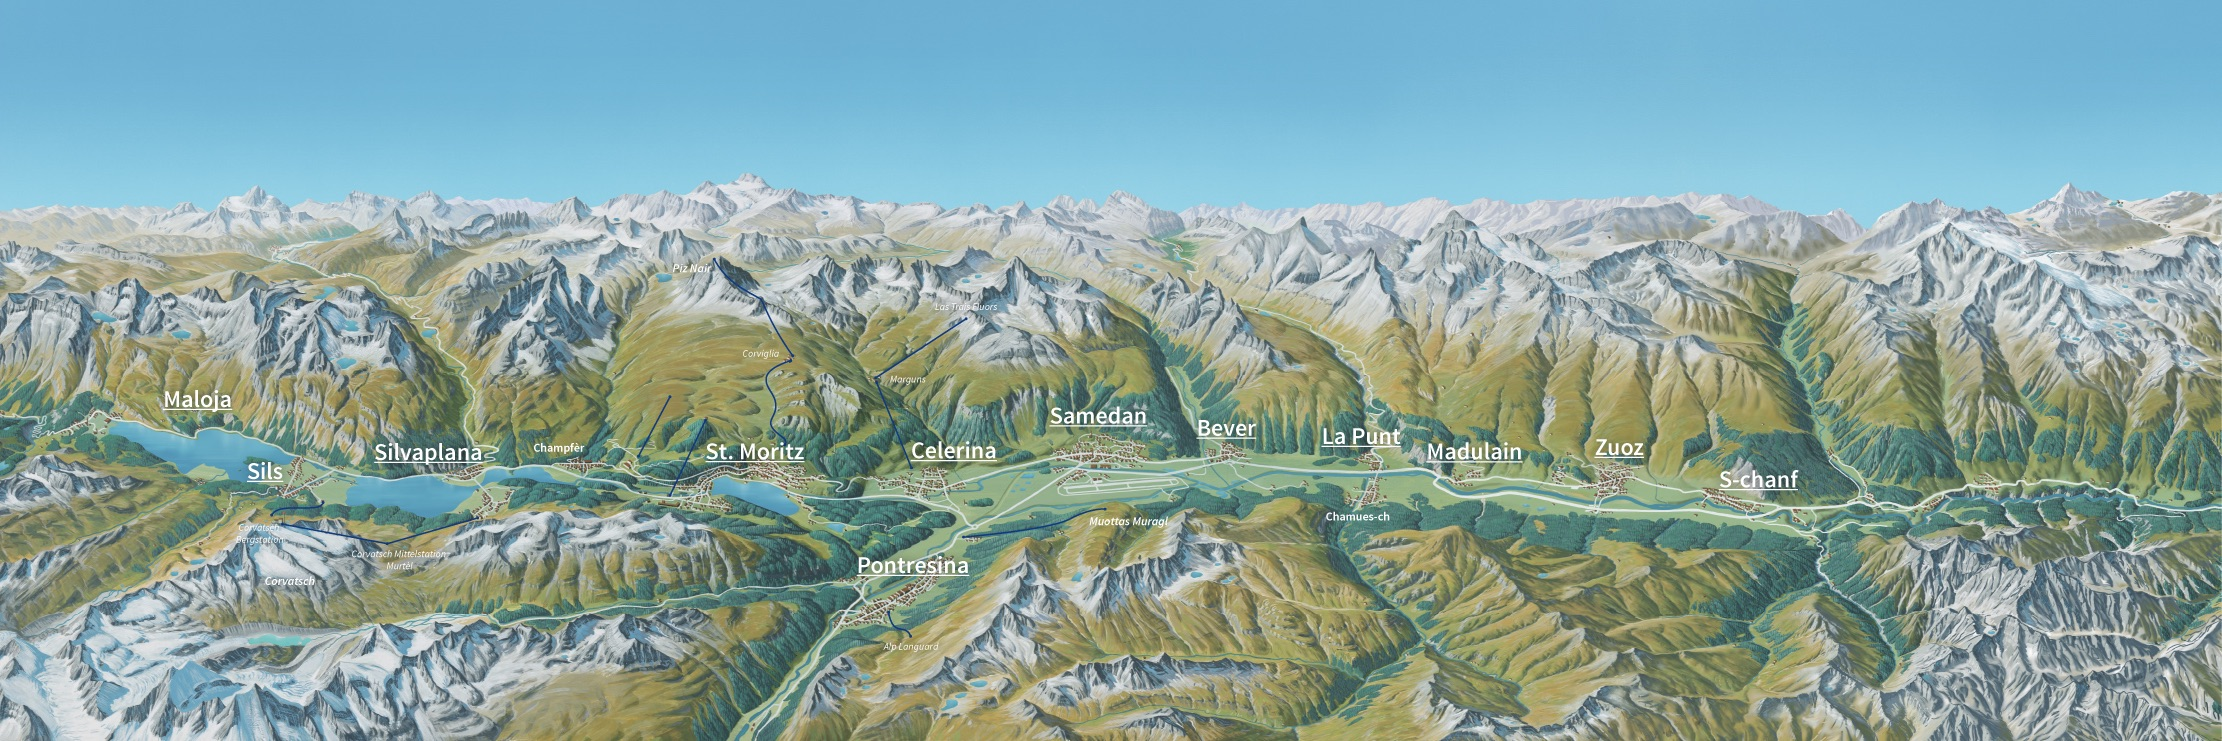 Engadin.ch map